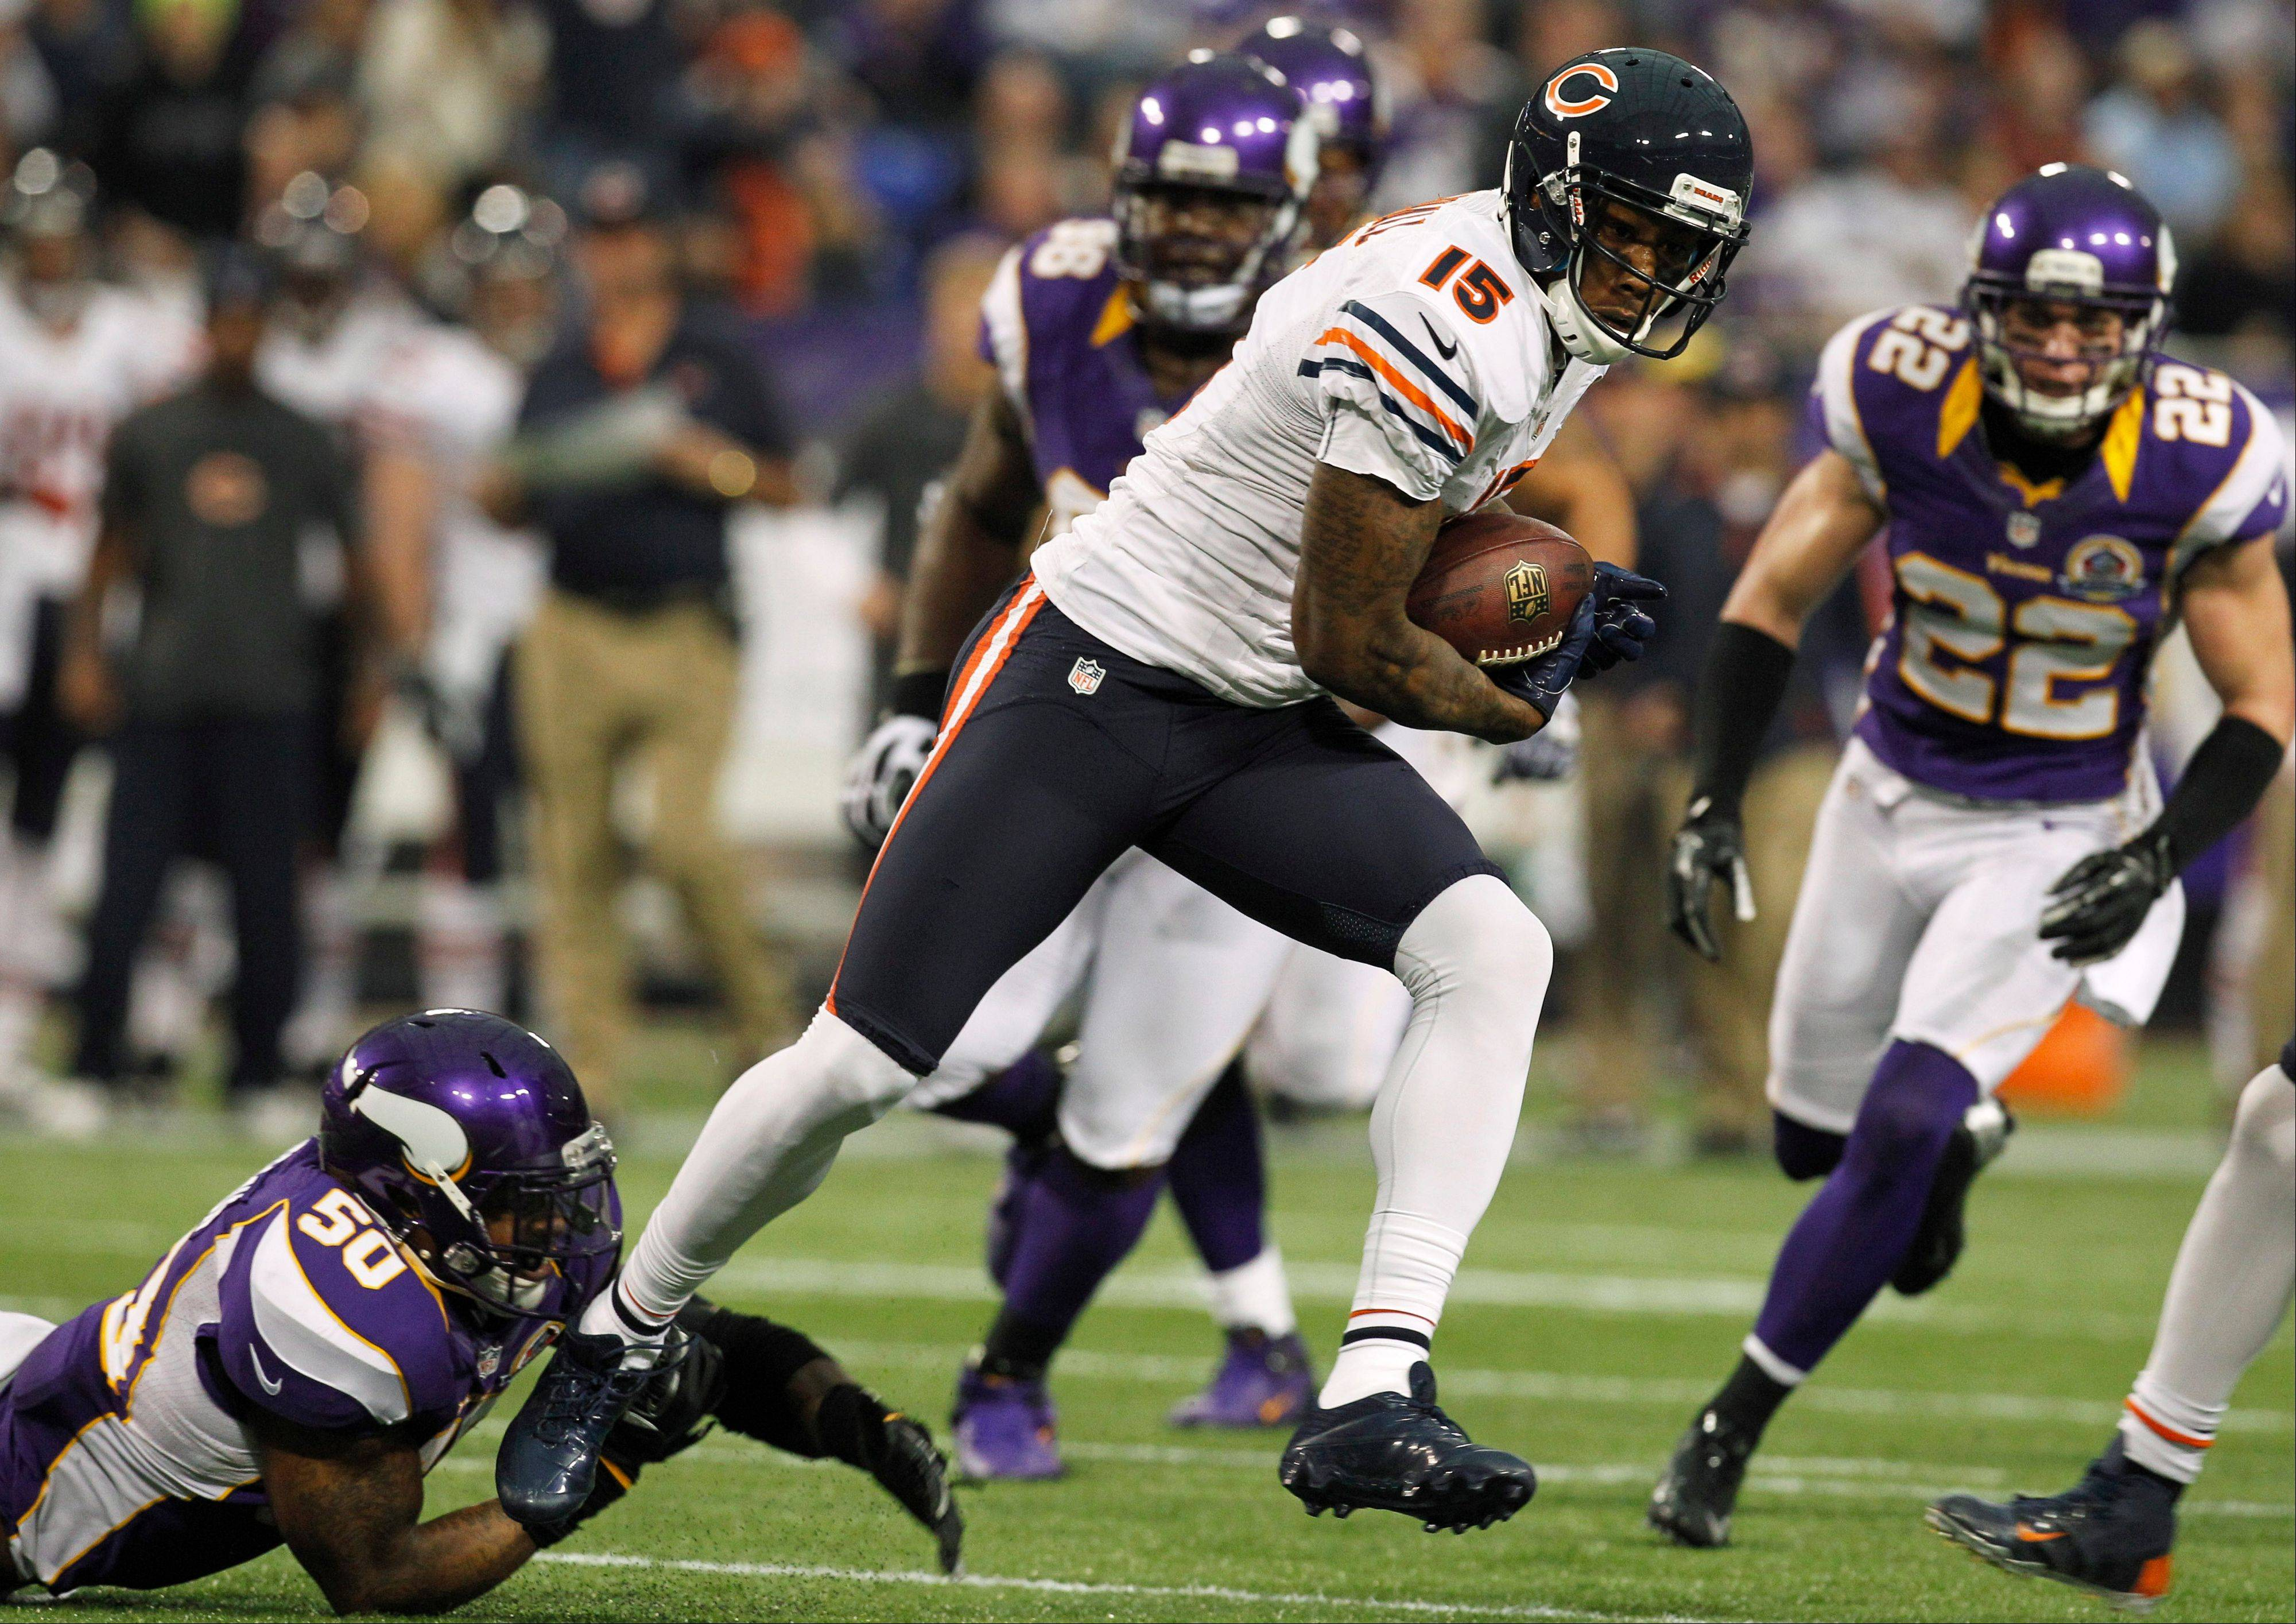 Bears wide receiver Brandon Marshall tries to elude a tackle by Vikings linebacker Erin Henderson after making a catch in the first half Sunday. Marshall finished with 10 catches for 160 yards.